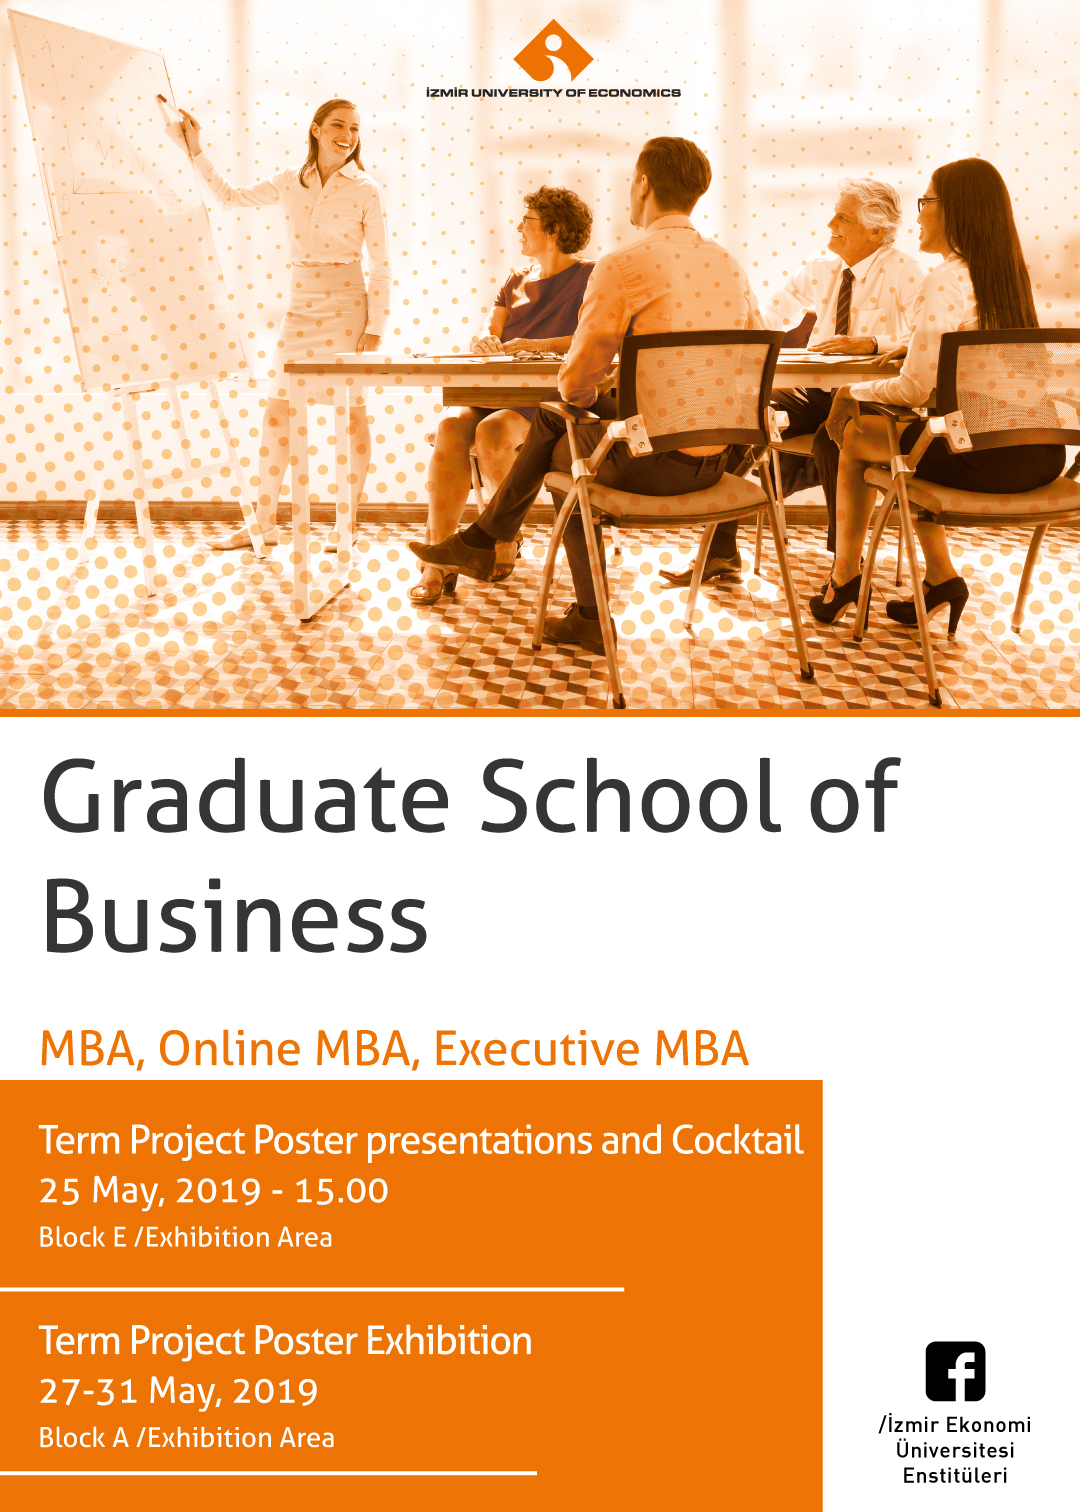 Graduate School of Business